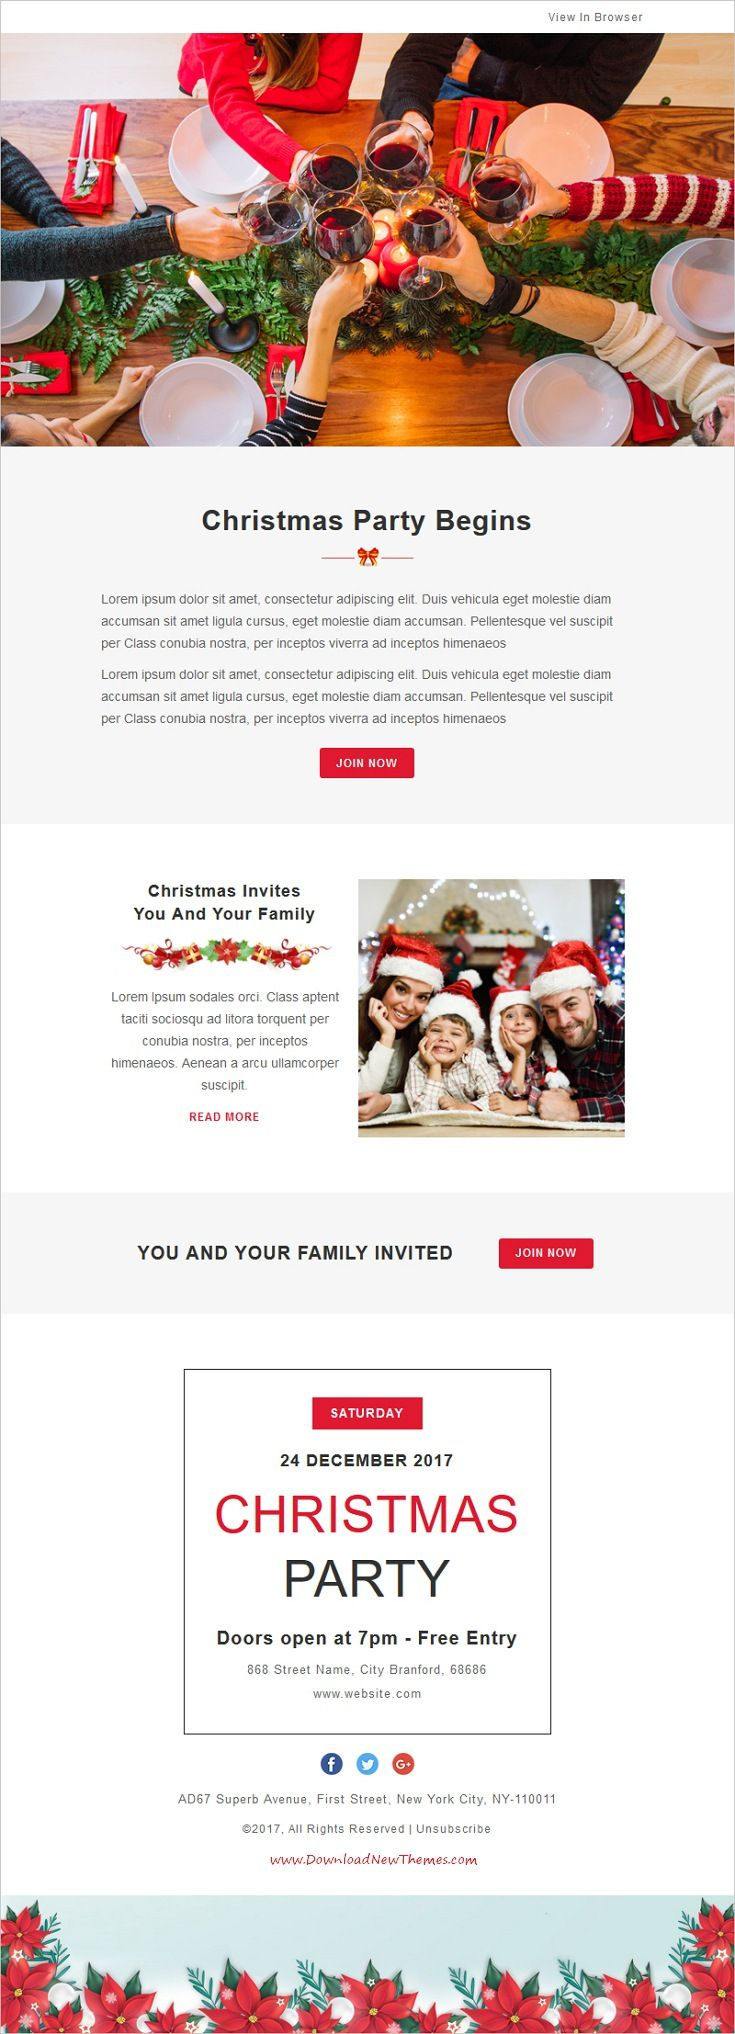 Les 170 meilleures images du tableau christmas decorations ideas festival christmas responsive email template 10 notifications with stampready builder access pronofoot35fo Gallery